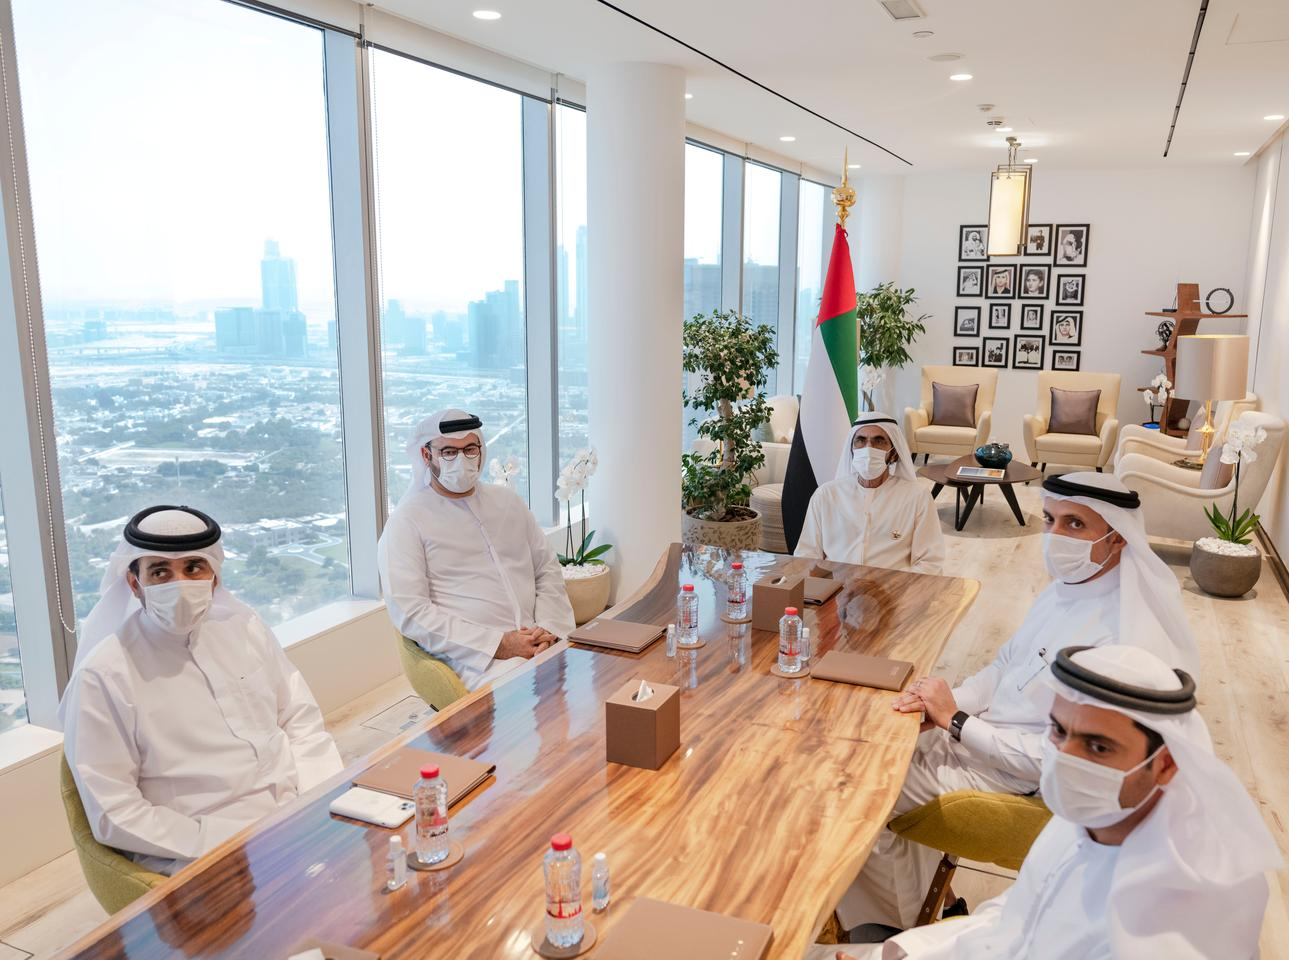 Emirati leaders gathered to discuss the Emirates Lunar Mission